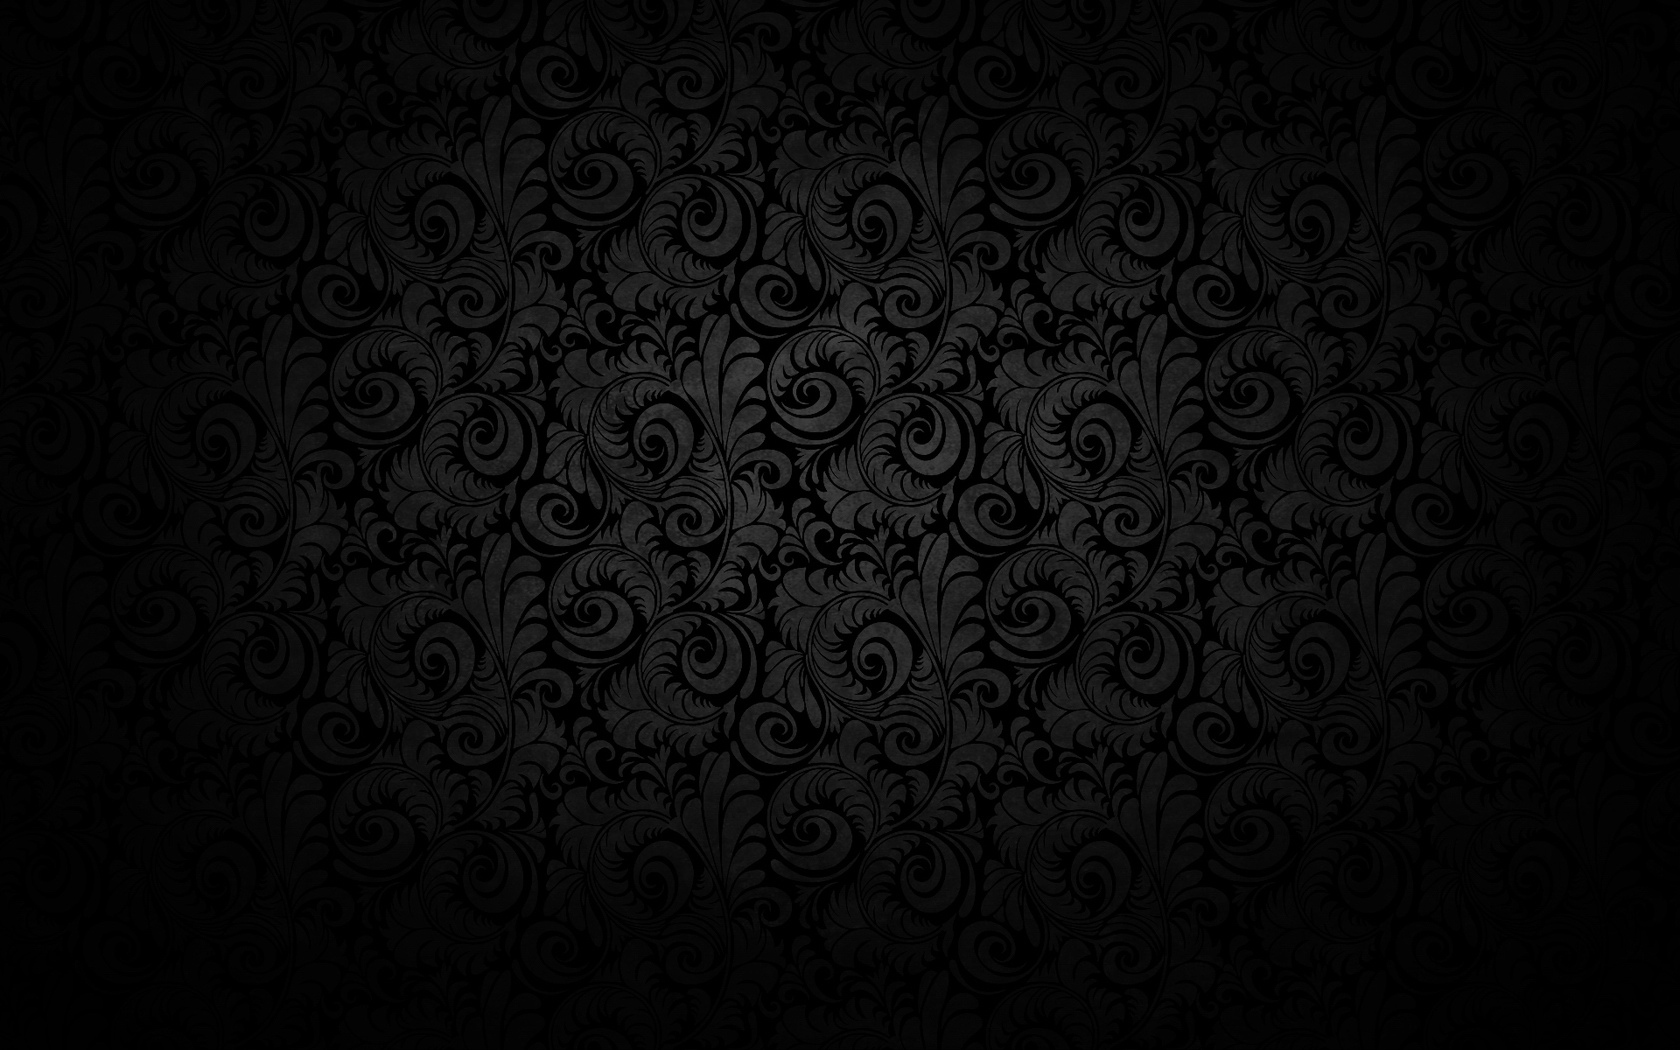 1680x1050 > Black Wallpapers